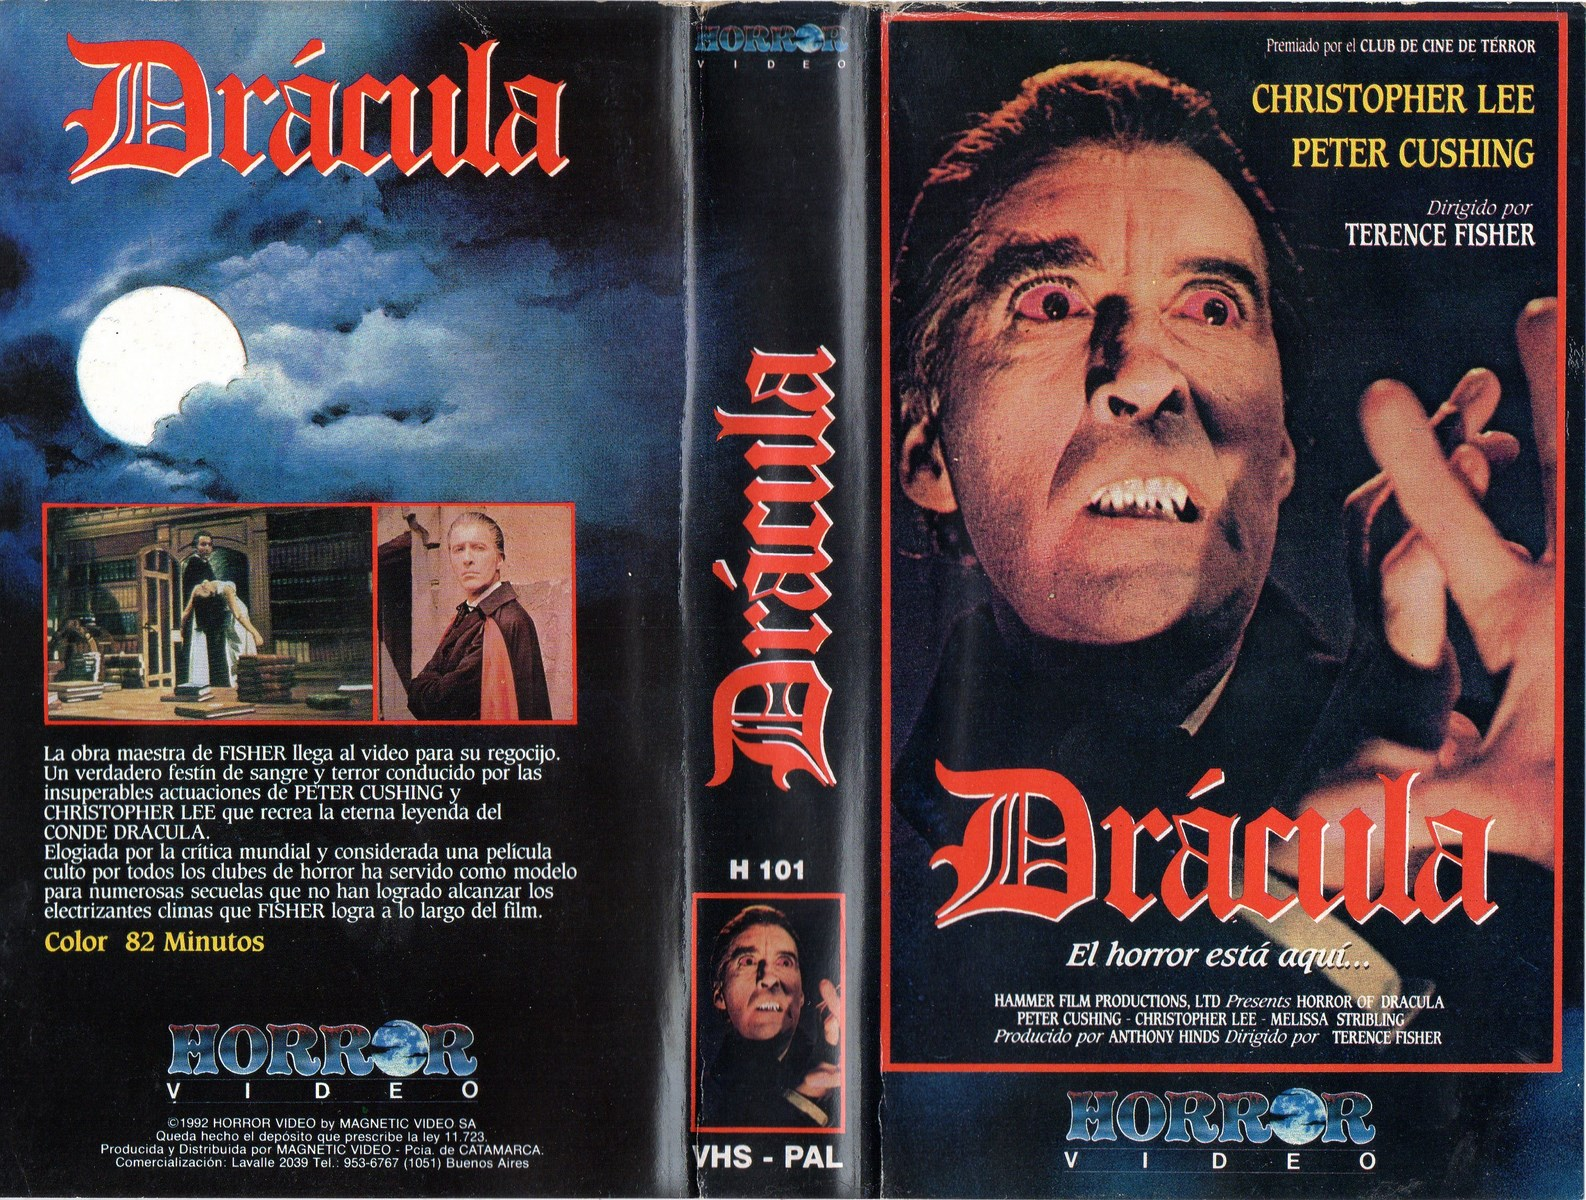 Drácula (1958) Terence Fisher / Hammer